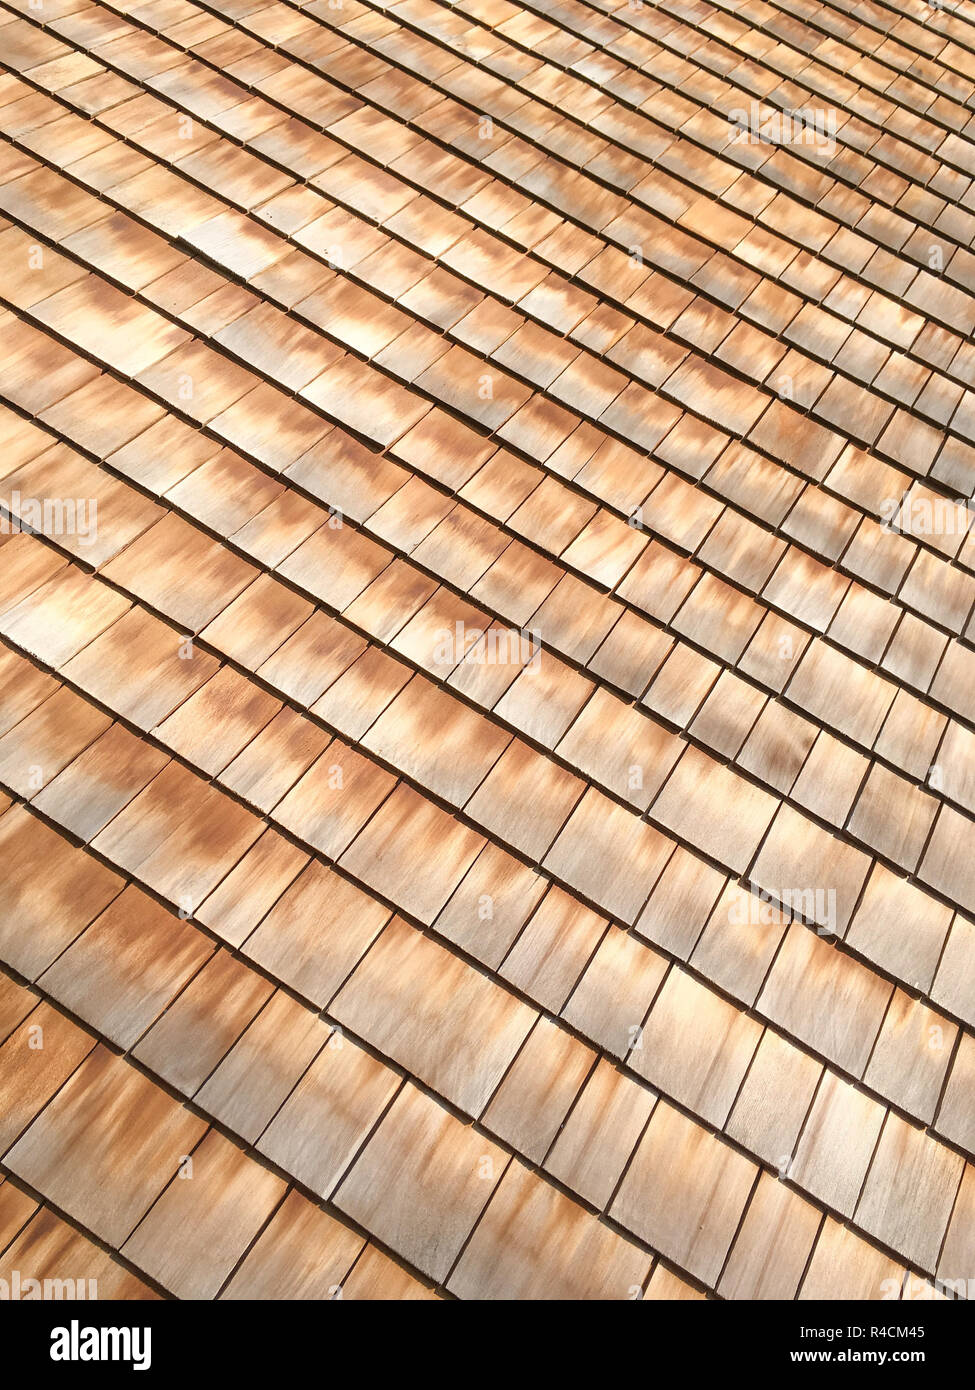 Wooden planks. - Stock Image